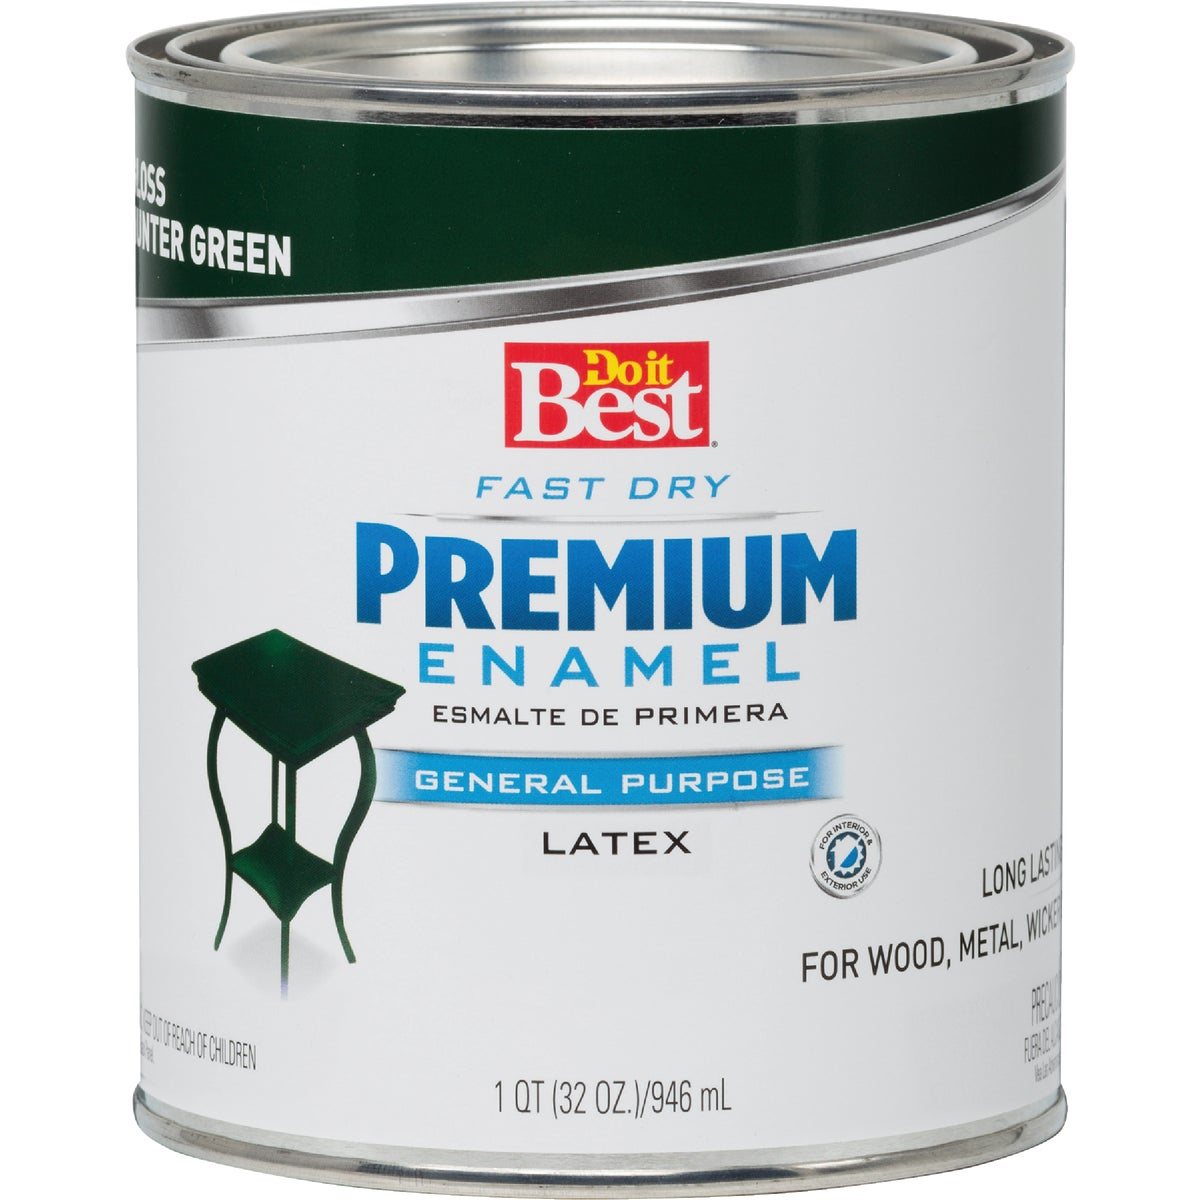 HUNTR GREEN LATEX ENAMEL - 2210 by Rustoleum